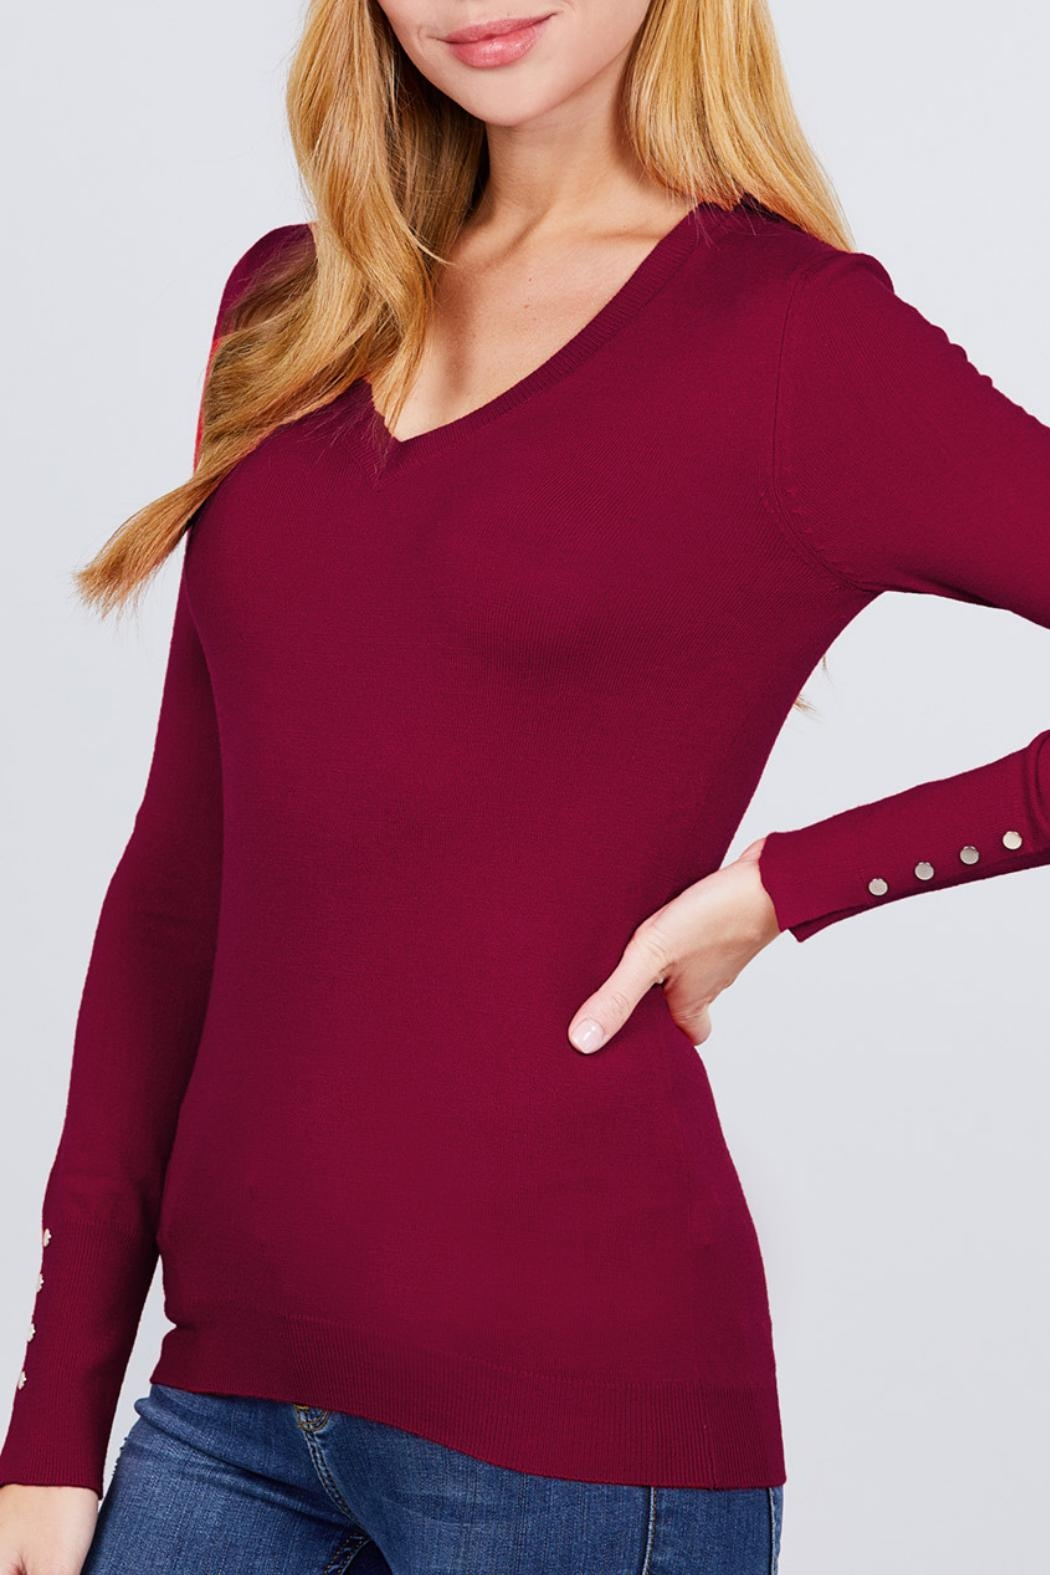 Active USA Wine V-Neck Sweater - Front Full Image